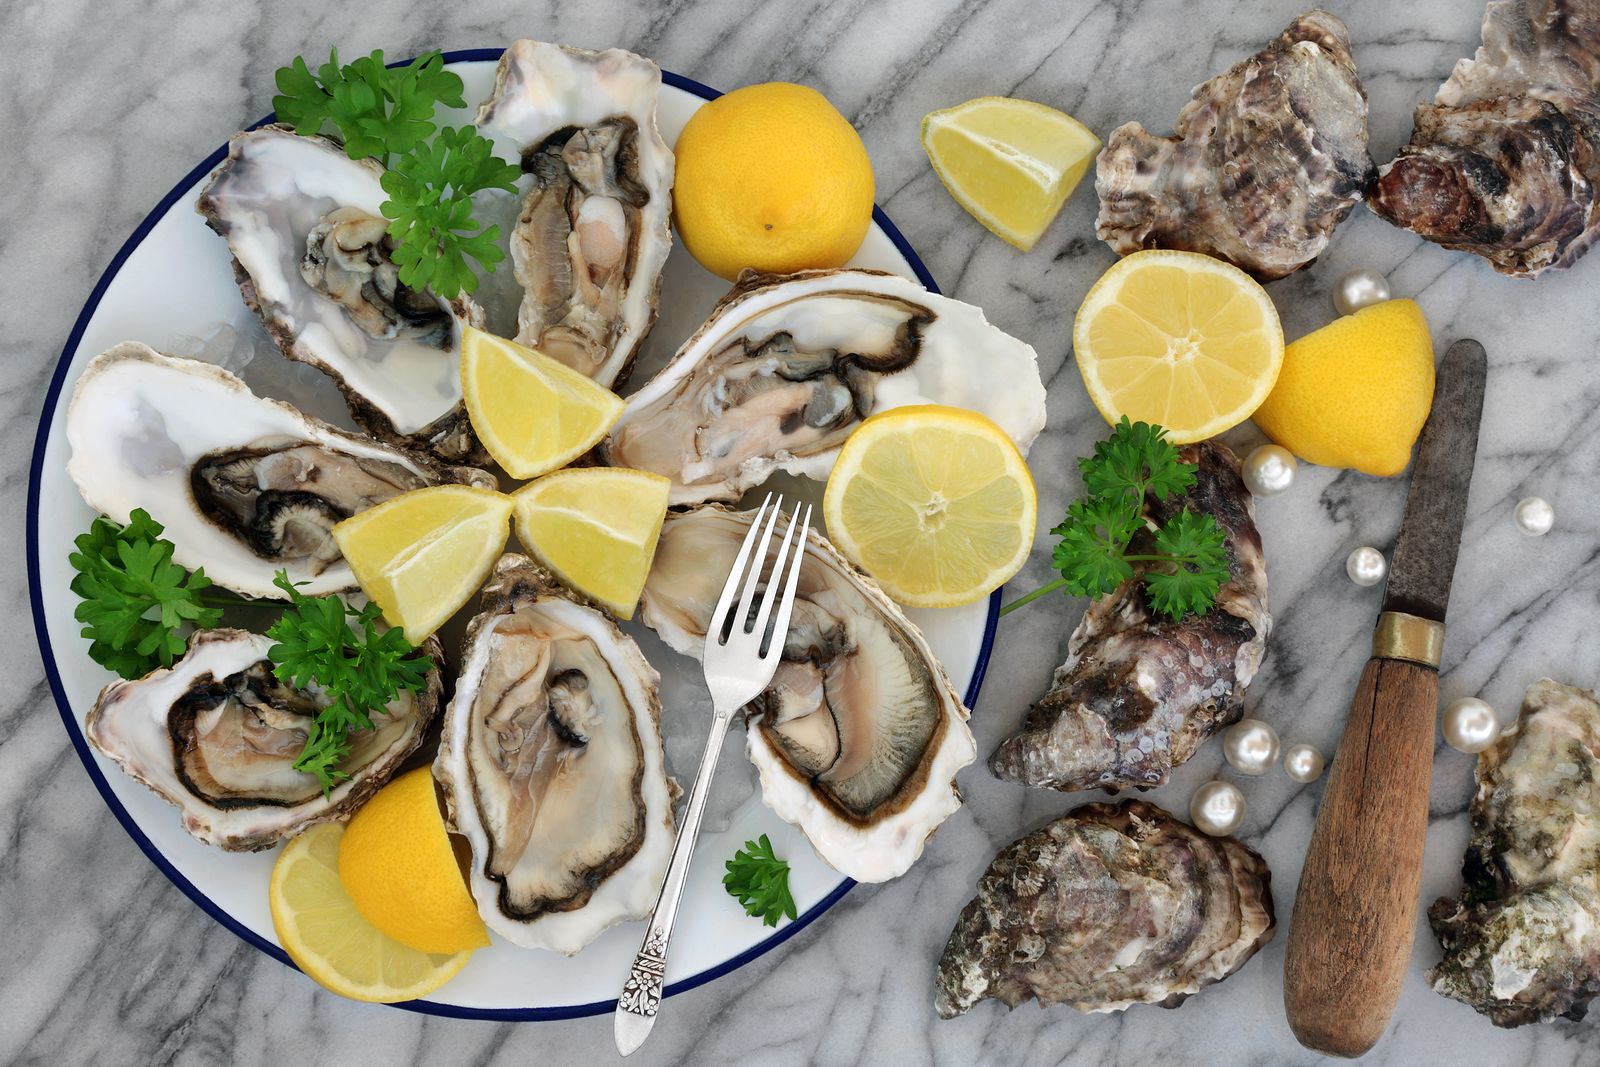 Shellfish is a very popular dish at our Scottish coastal towns; Drumscot recommend Coruisk House on the Isle of Skye